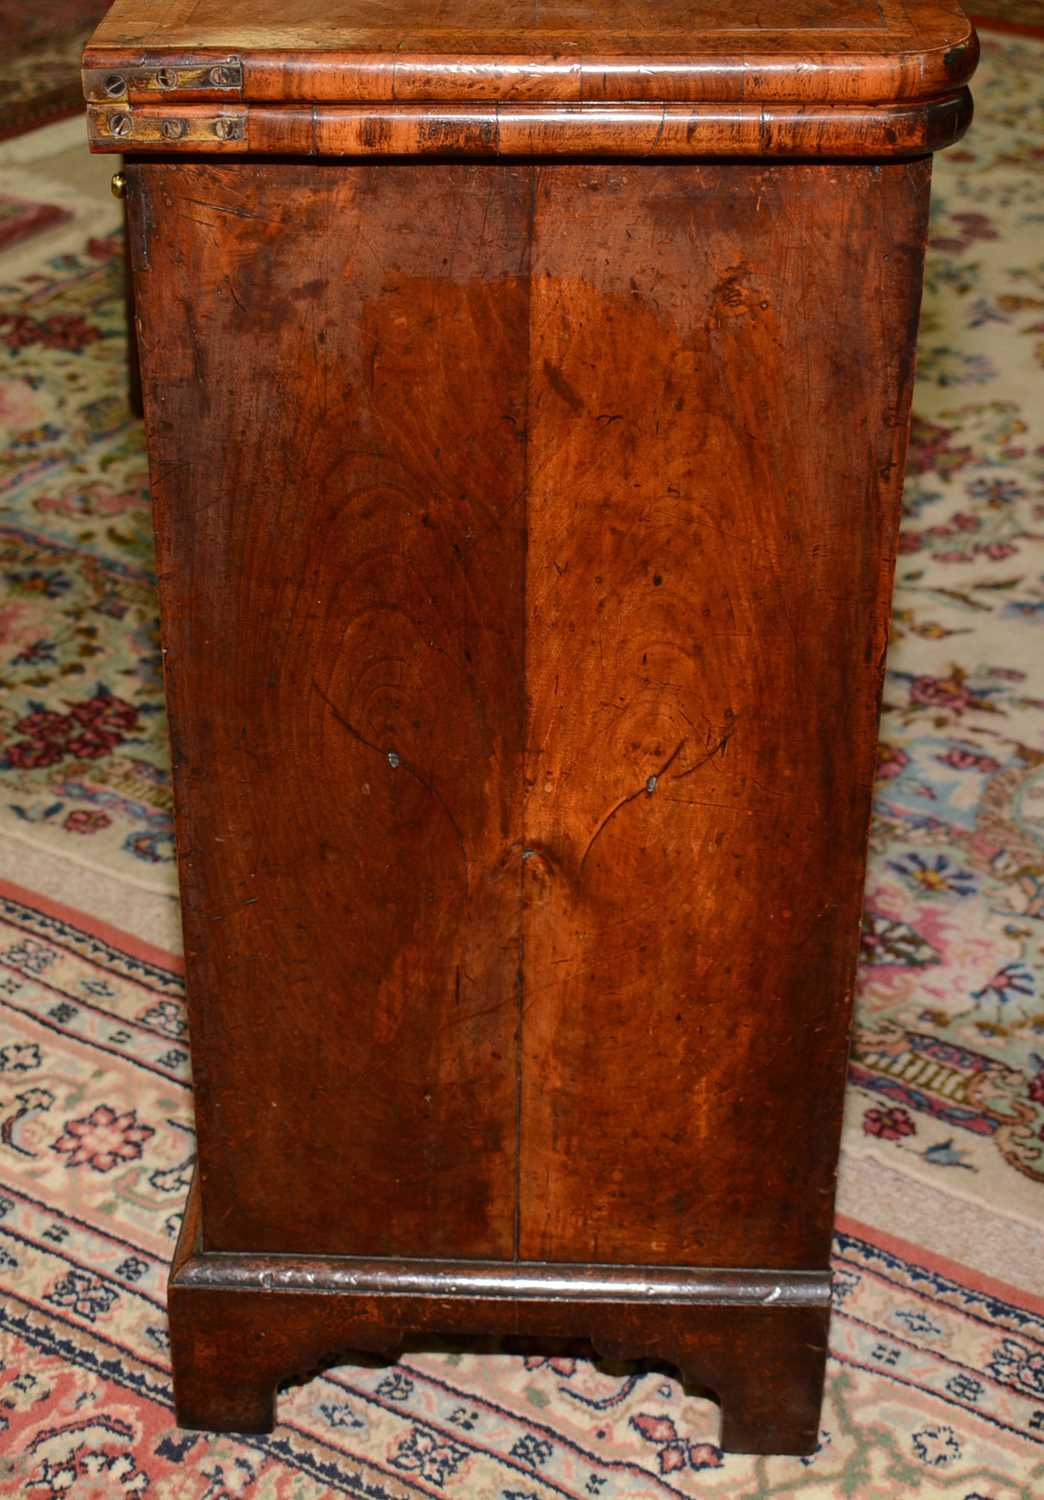 Early 18th Century walnut bachelors chest - Image 13 of 39